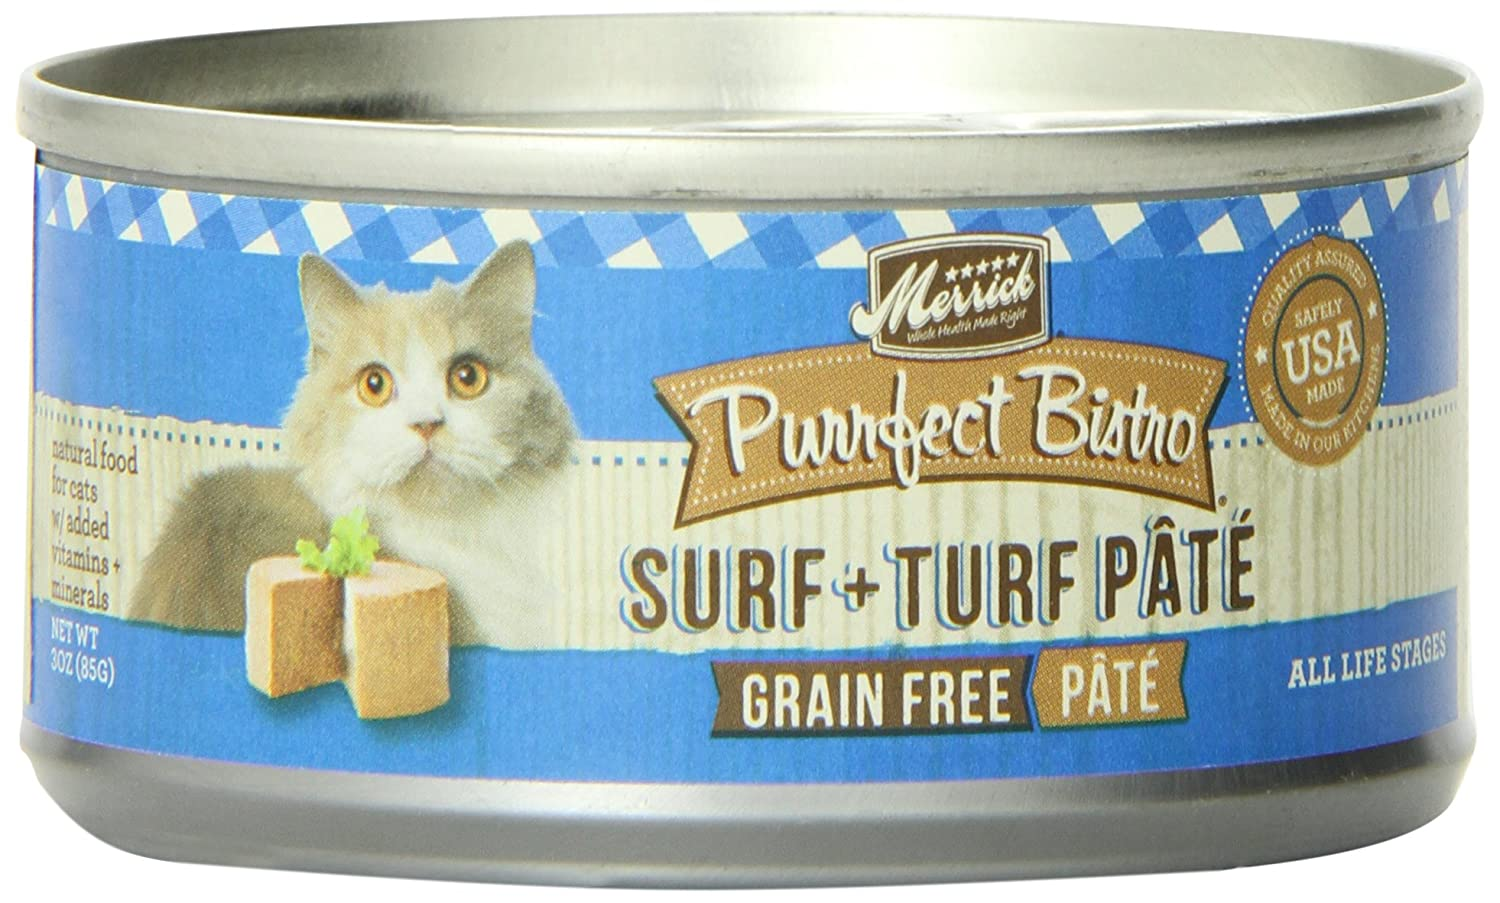 Purrfect Bistro Suf & Turf Pate Can 3.2 oz